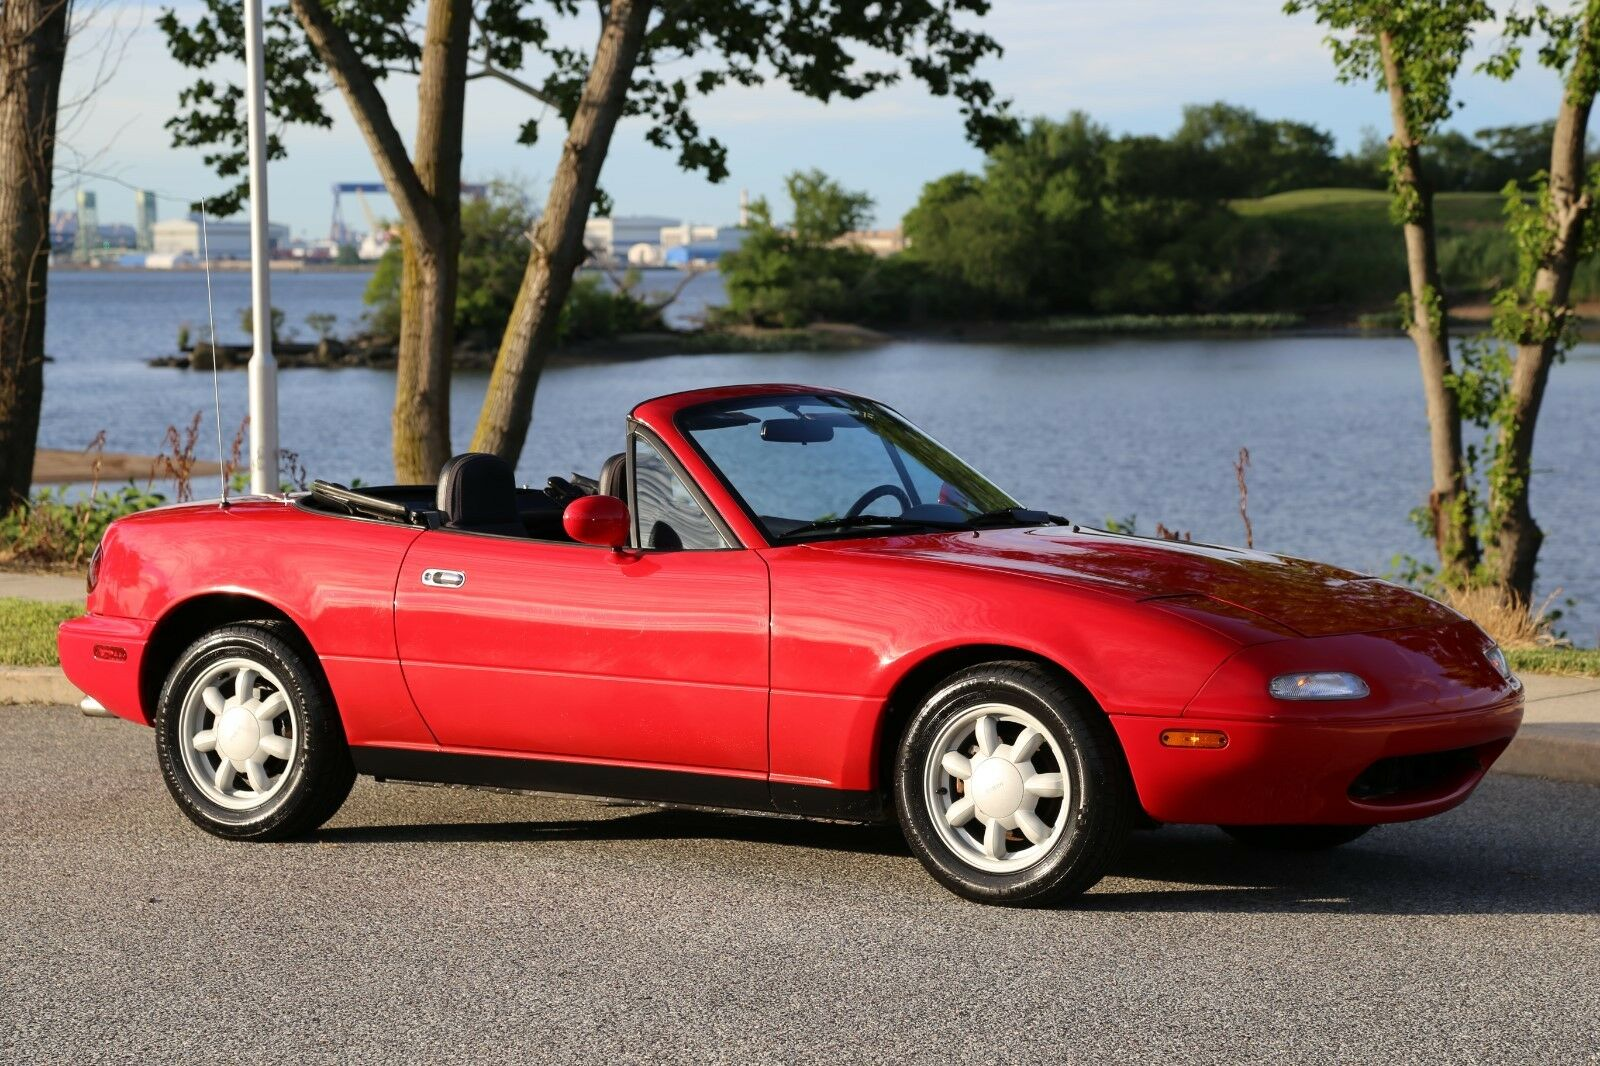 1990 mazda mx 5 miata convertible 65k original miles 1 owner garaged no reserve used mazda mx. Black Bedroom Furniture Sets. Home Design Ideas